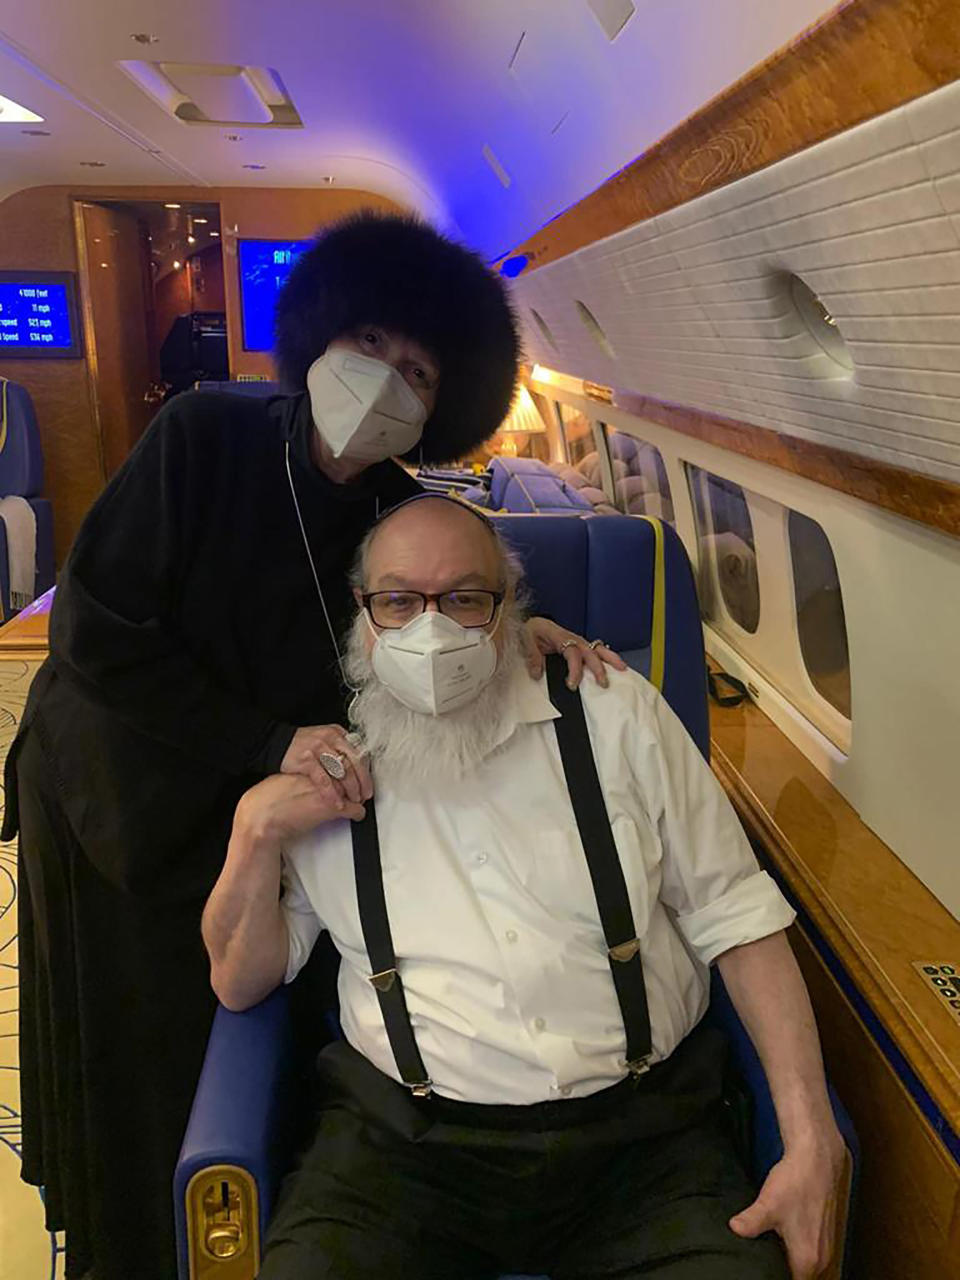 Jonathan Pollard and his wife Esther sit inside a private plane provided by American casino magnate Sheldon Adelson, on route to land in Ben Gurion International airport near Tel Aviv, Israel, Wednesday, Dec. 30, 2020. Pollard, who spent 30 years in U.S. prison for spying for Israel, arrived in Israel early Wednesday with his wife, triumphantly kissing the ground as he disembarked from the aircraft in the culmination of a decades-long affair that had long strained relations between the two close allies. (AP Photo/Israel Hayom)